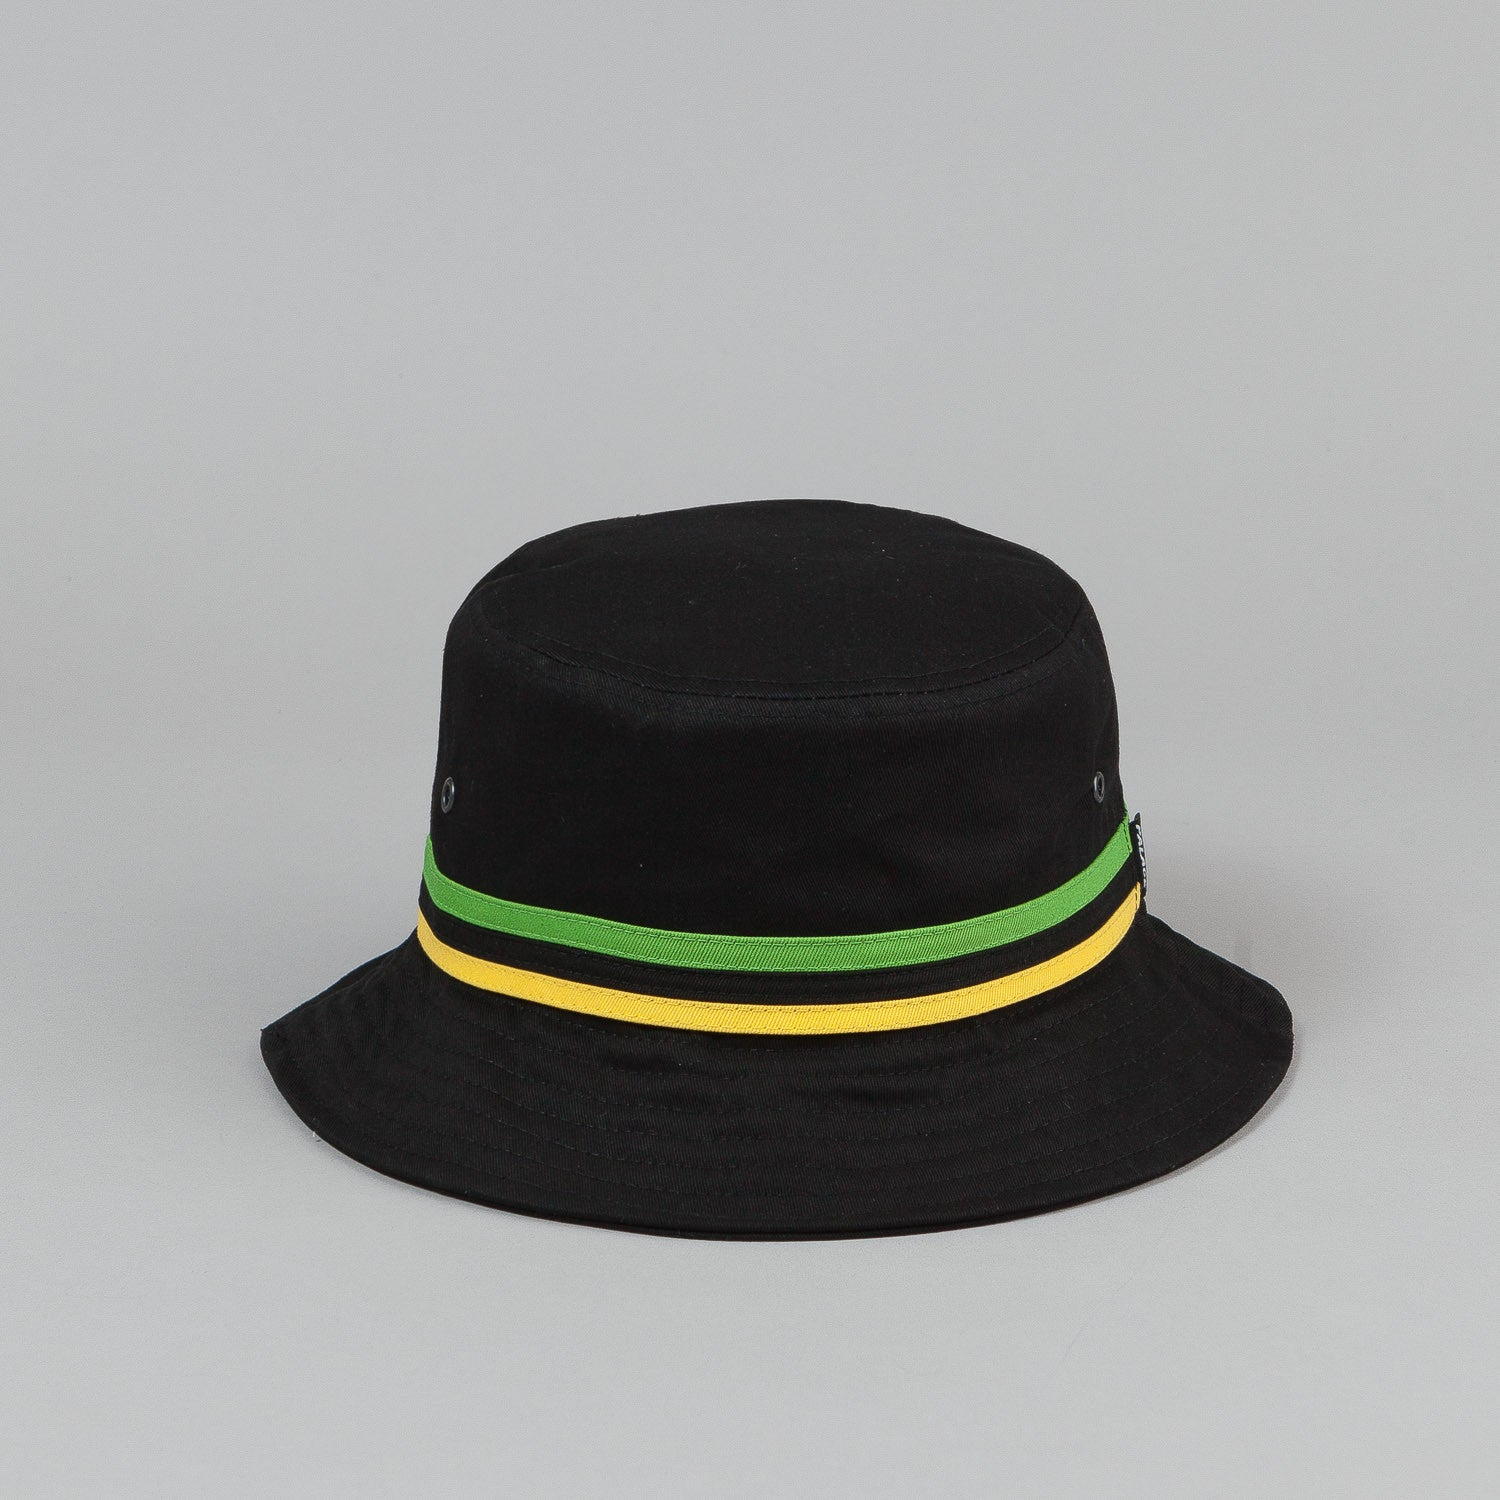 Palace Bucket Hat - Black / Striped Trim